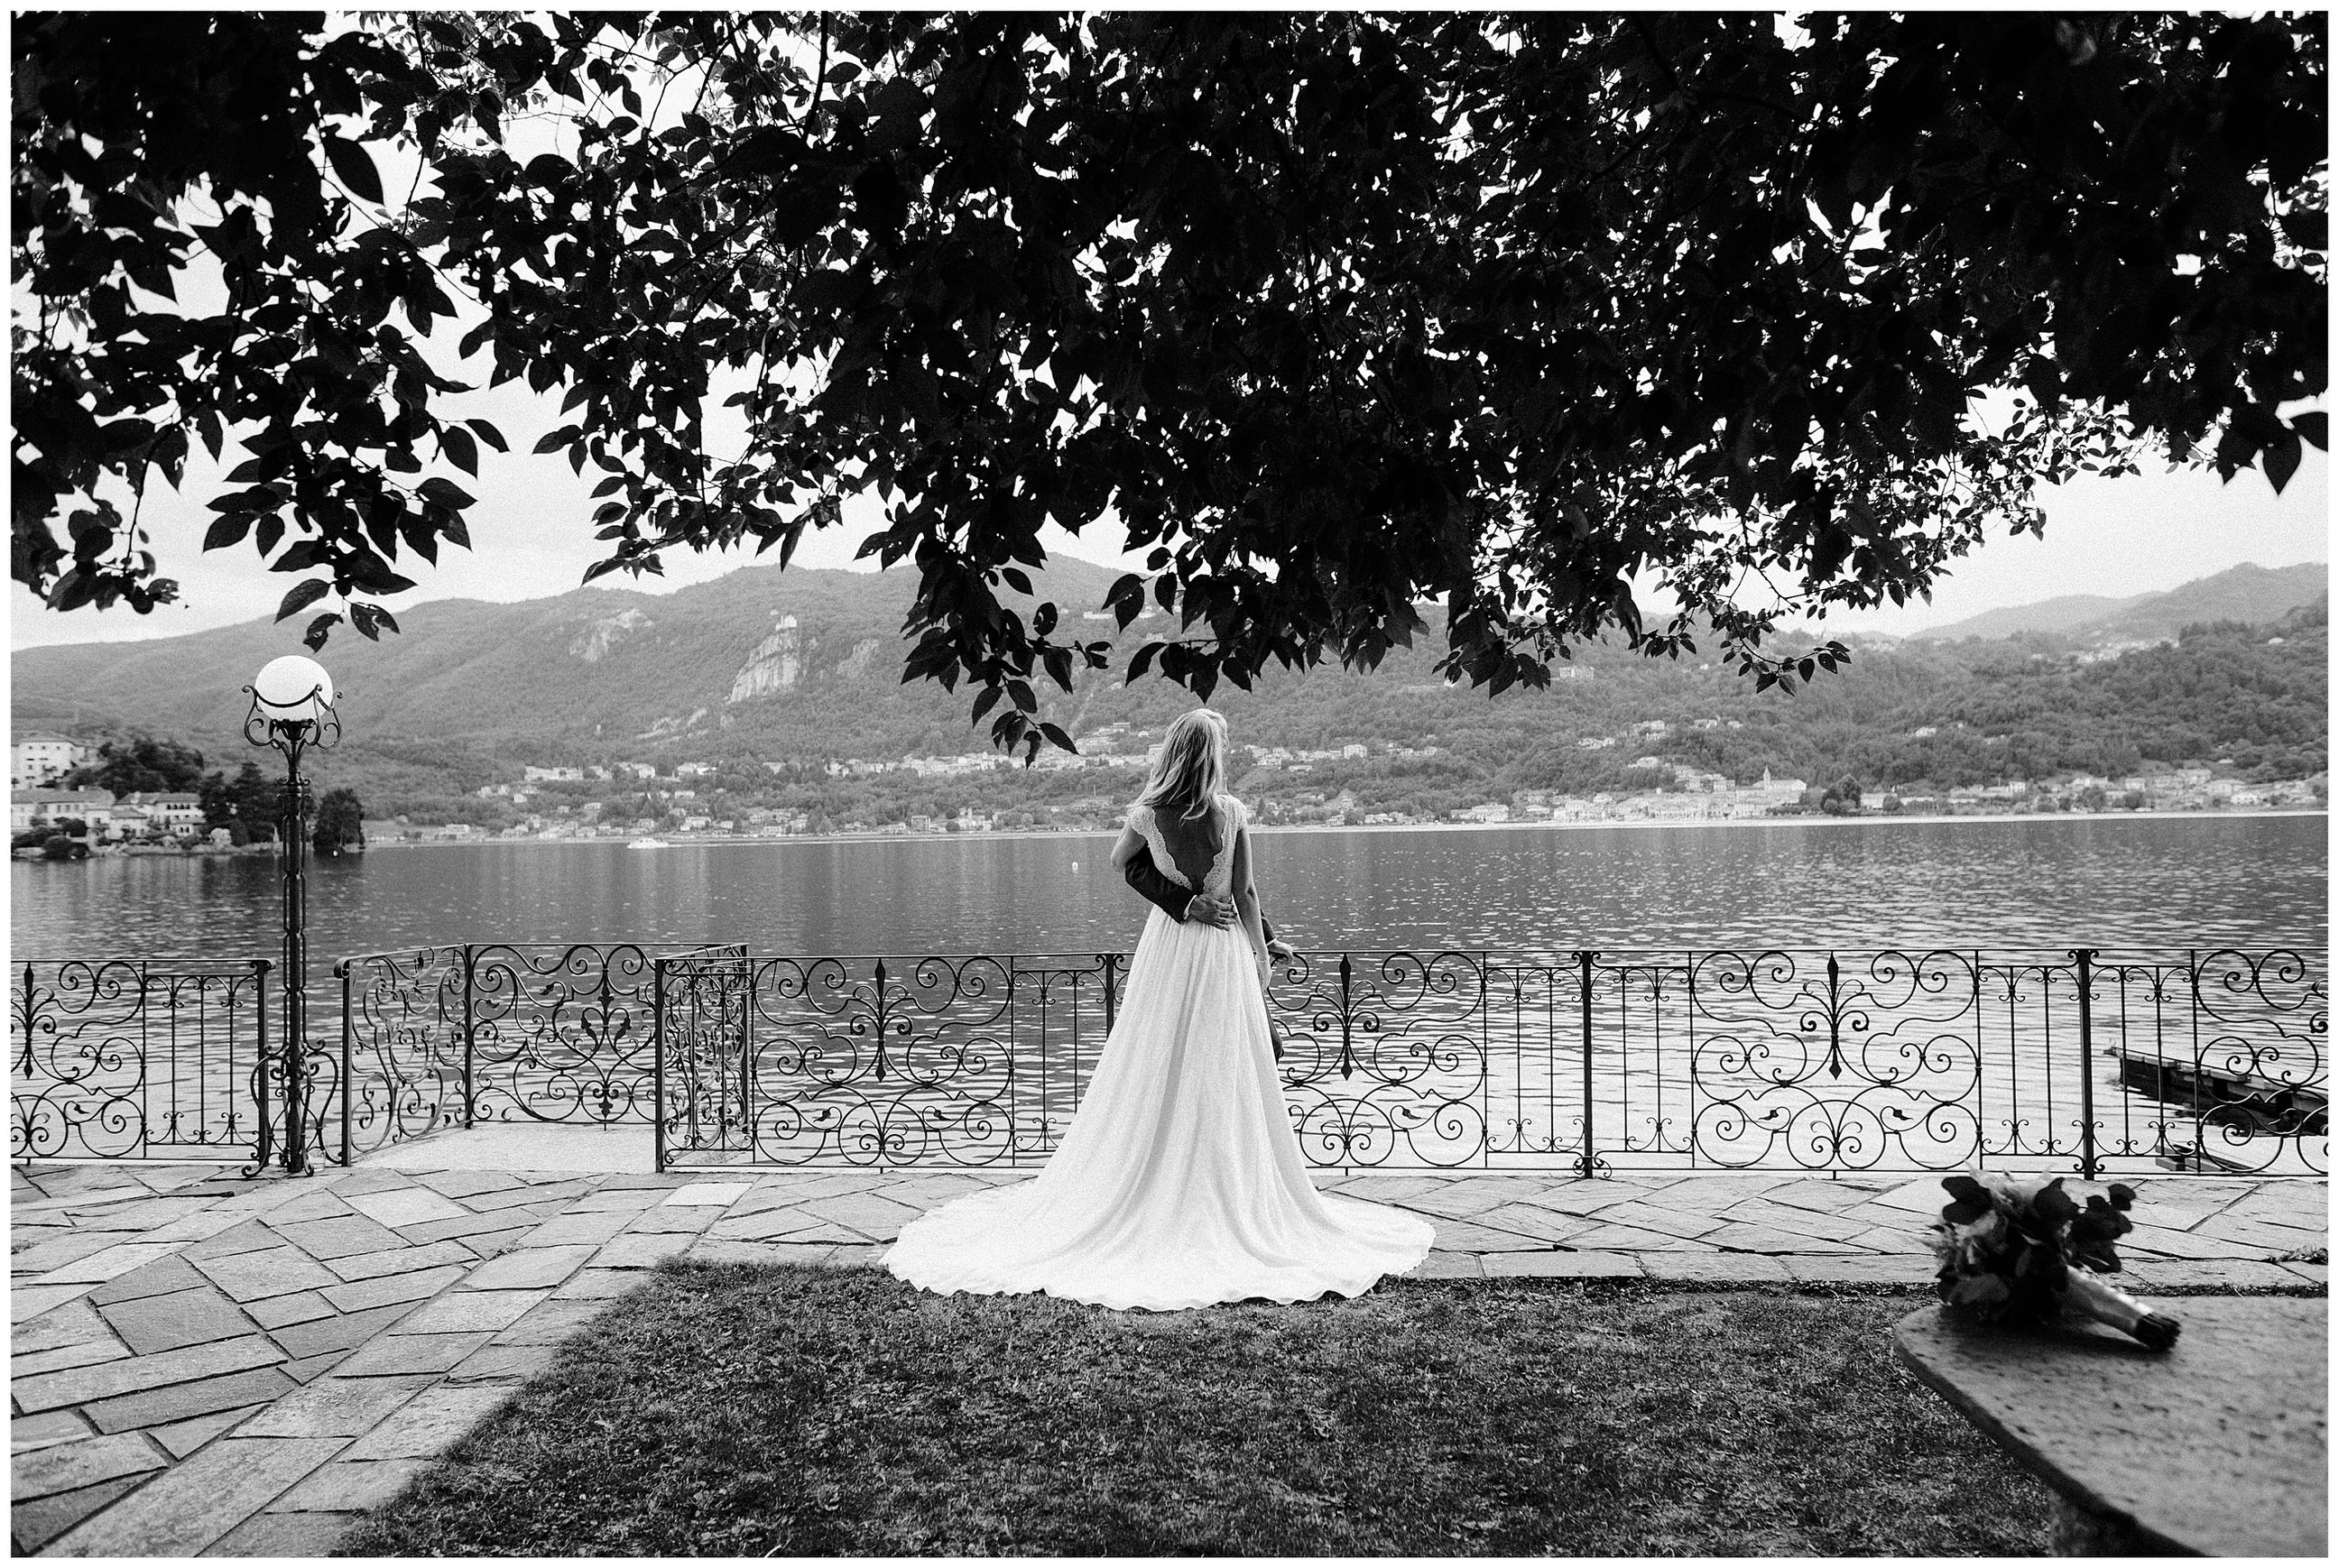 Wedding in Orta Lake